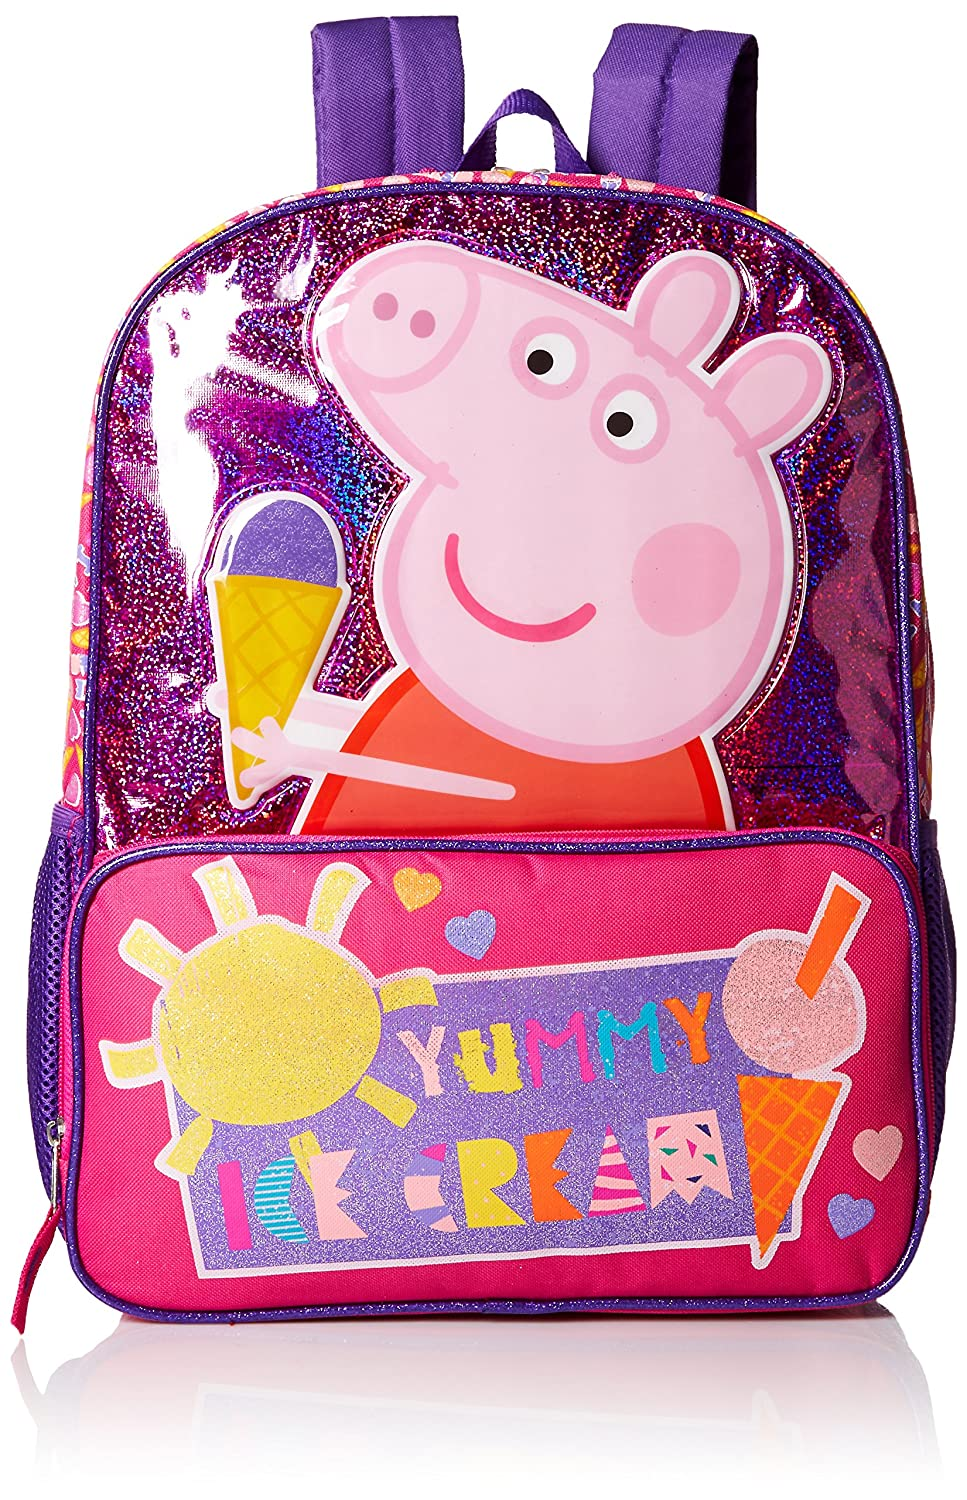 free shipping Peppa Pig Girls' Ice Cream Front Zipper Pocket 16 Inch Backpack, Pink